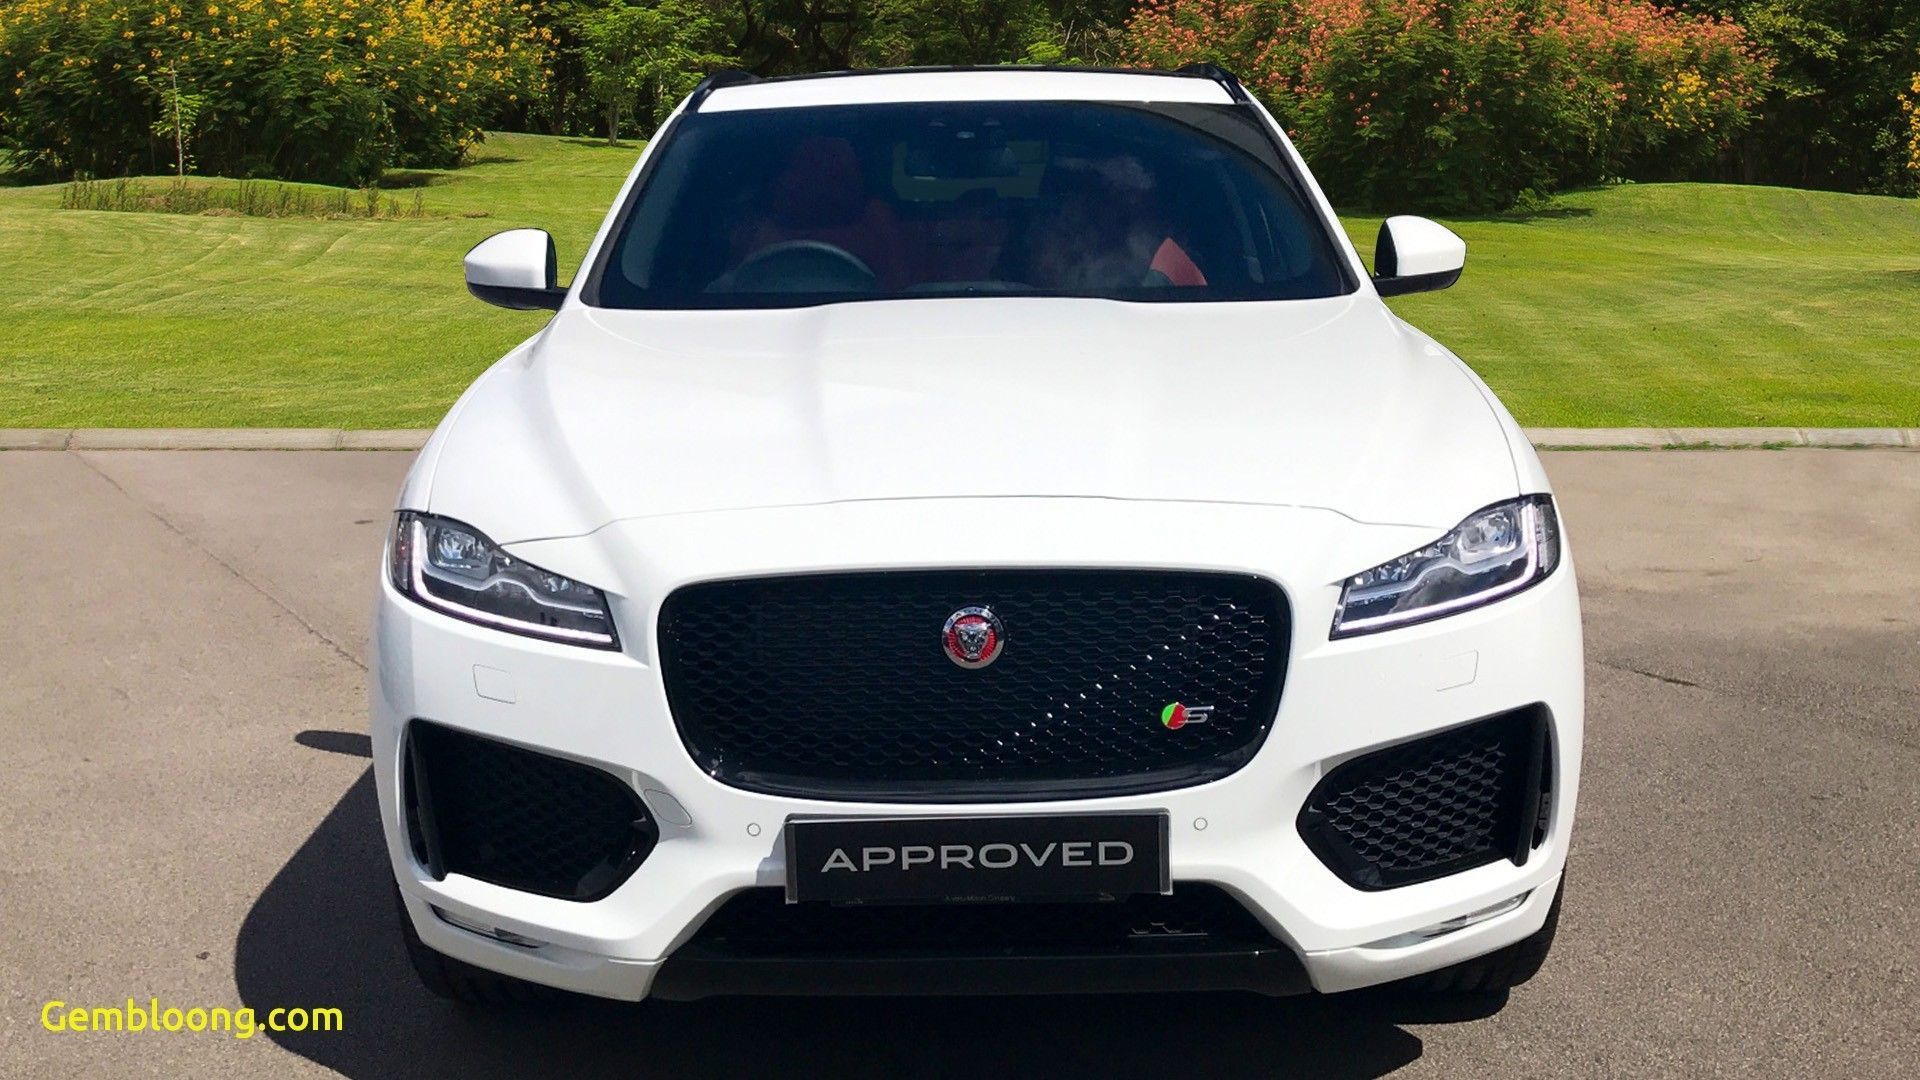 Awesome Cars for Sale Near Me New